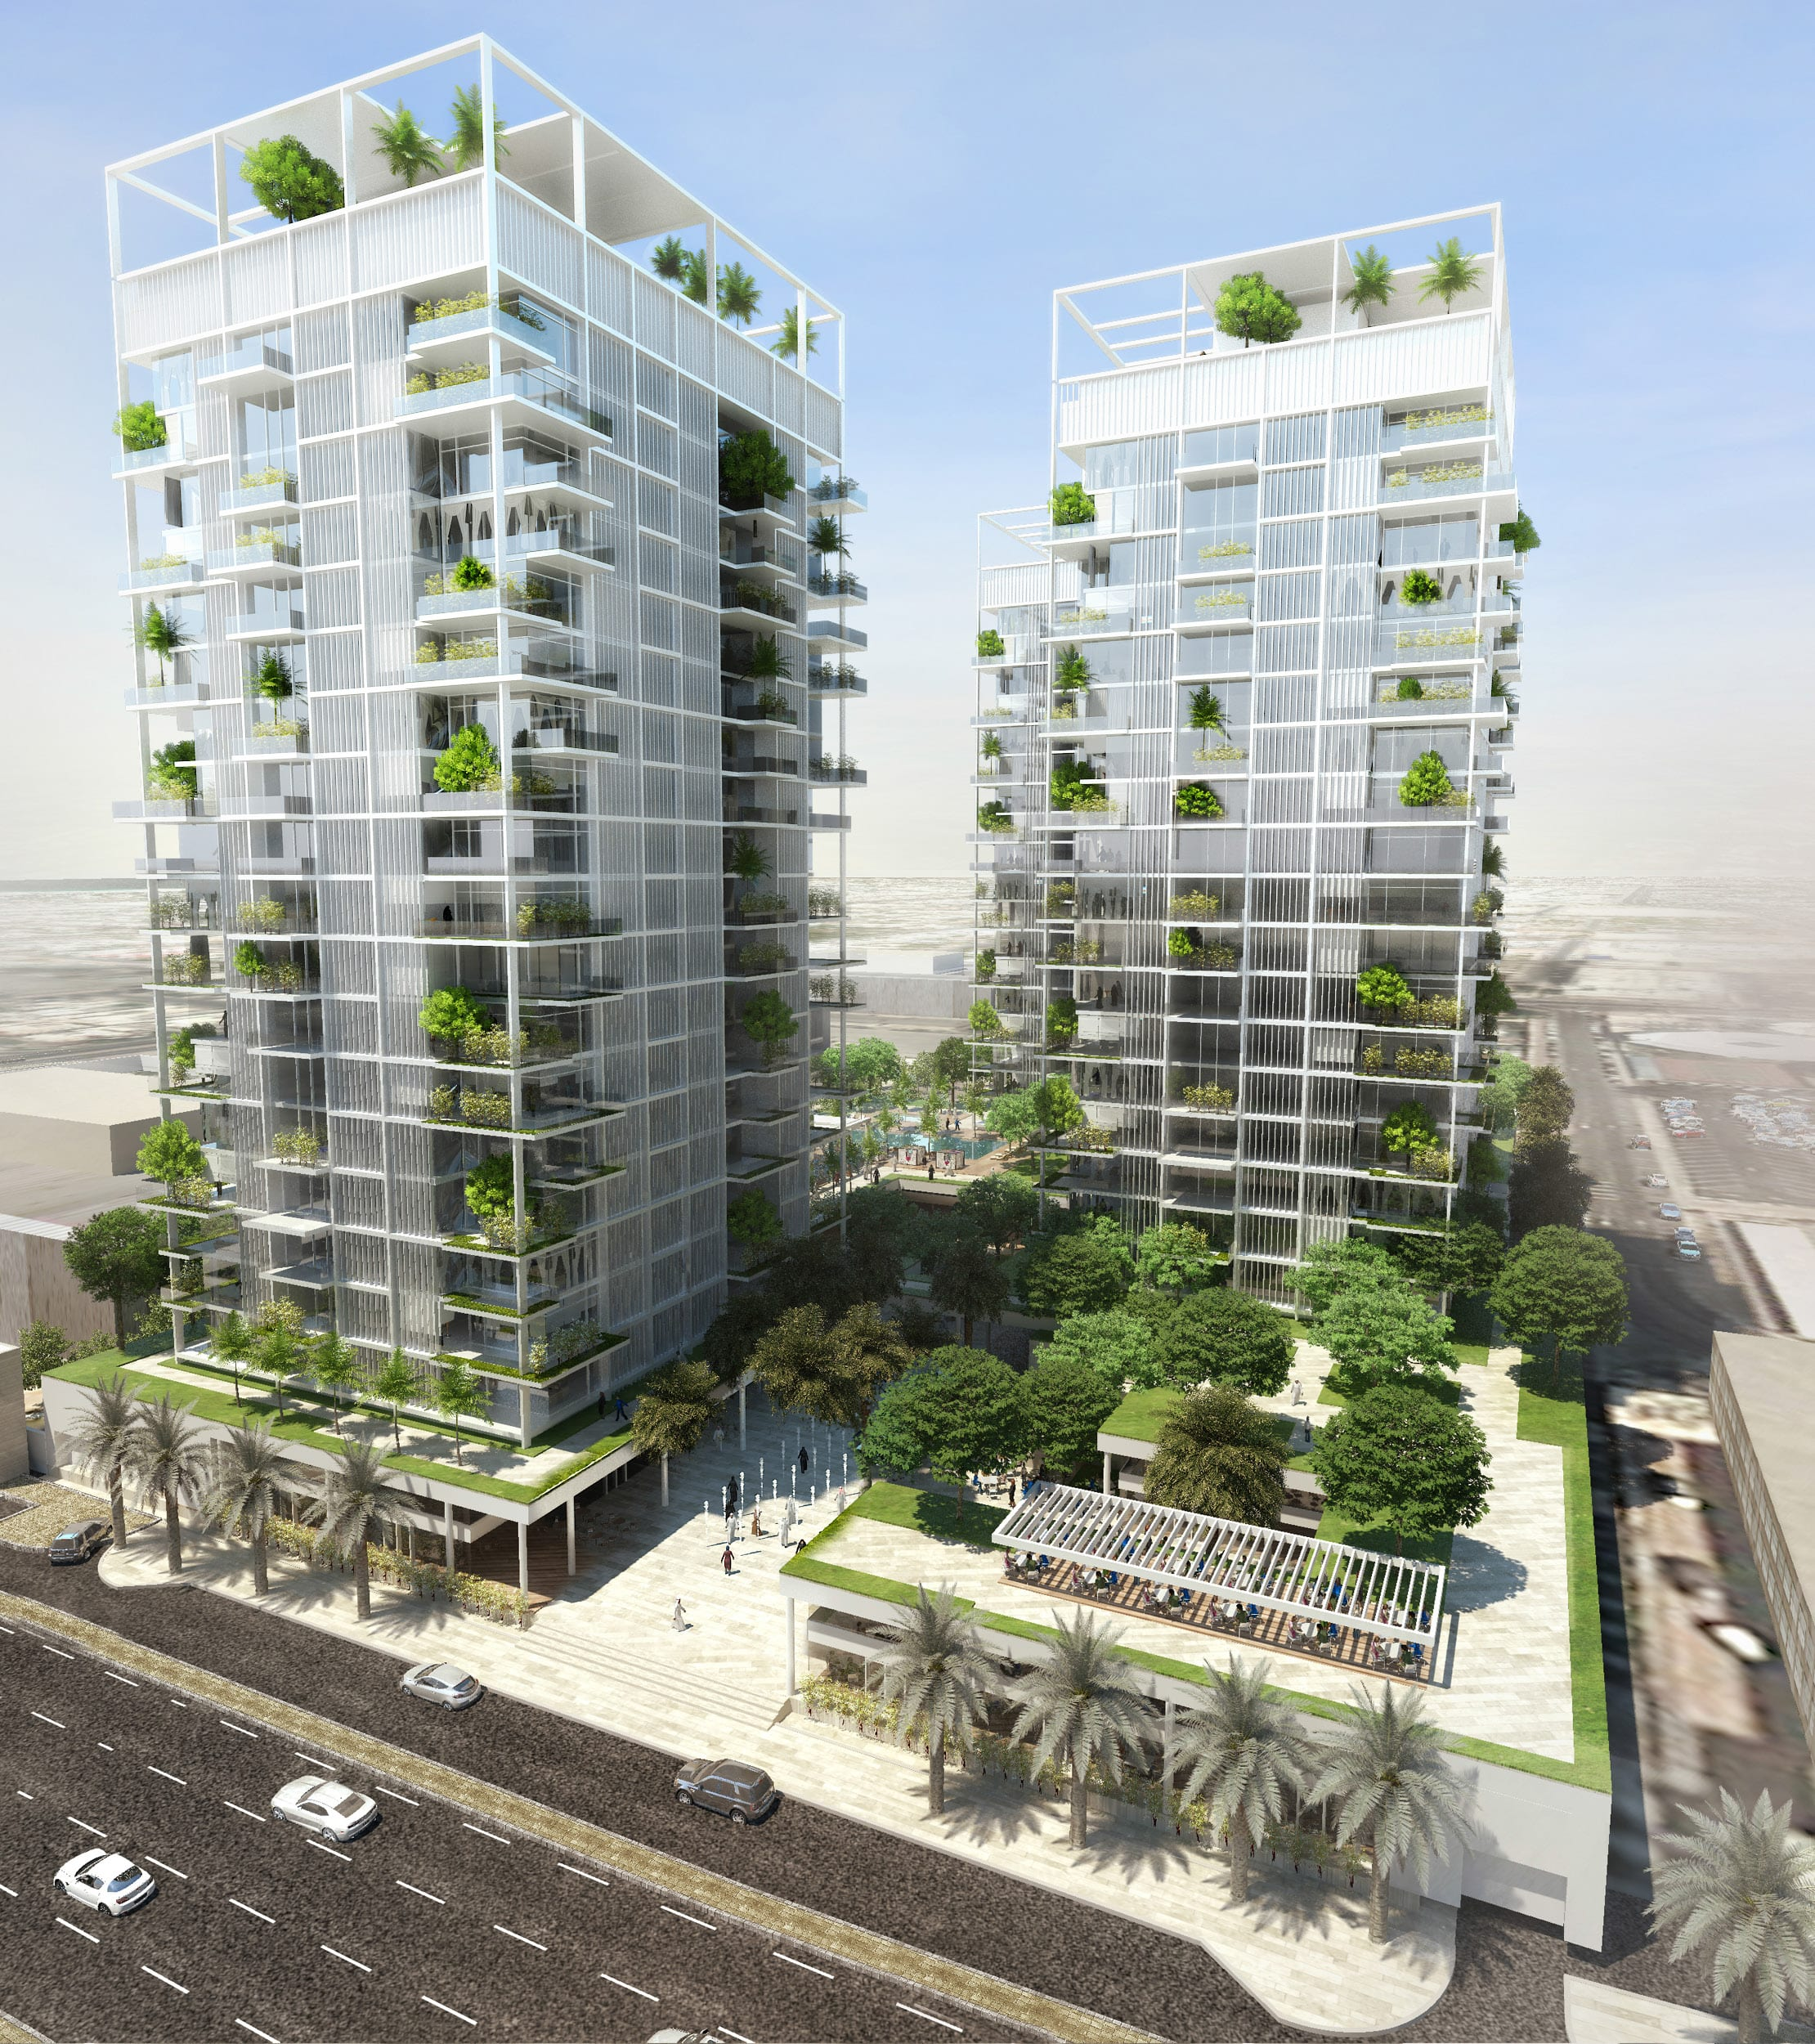 Downtown Towers by Quezada Architecture (Fred Quezada, Cecilia Quezada, Ed Tingley)